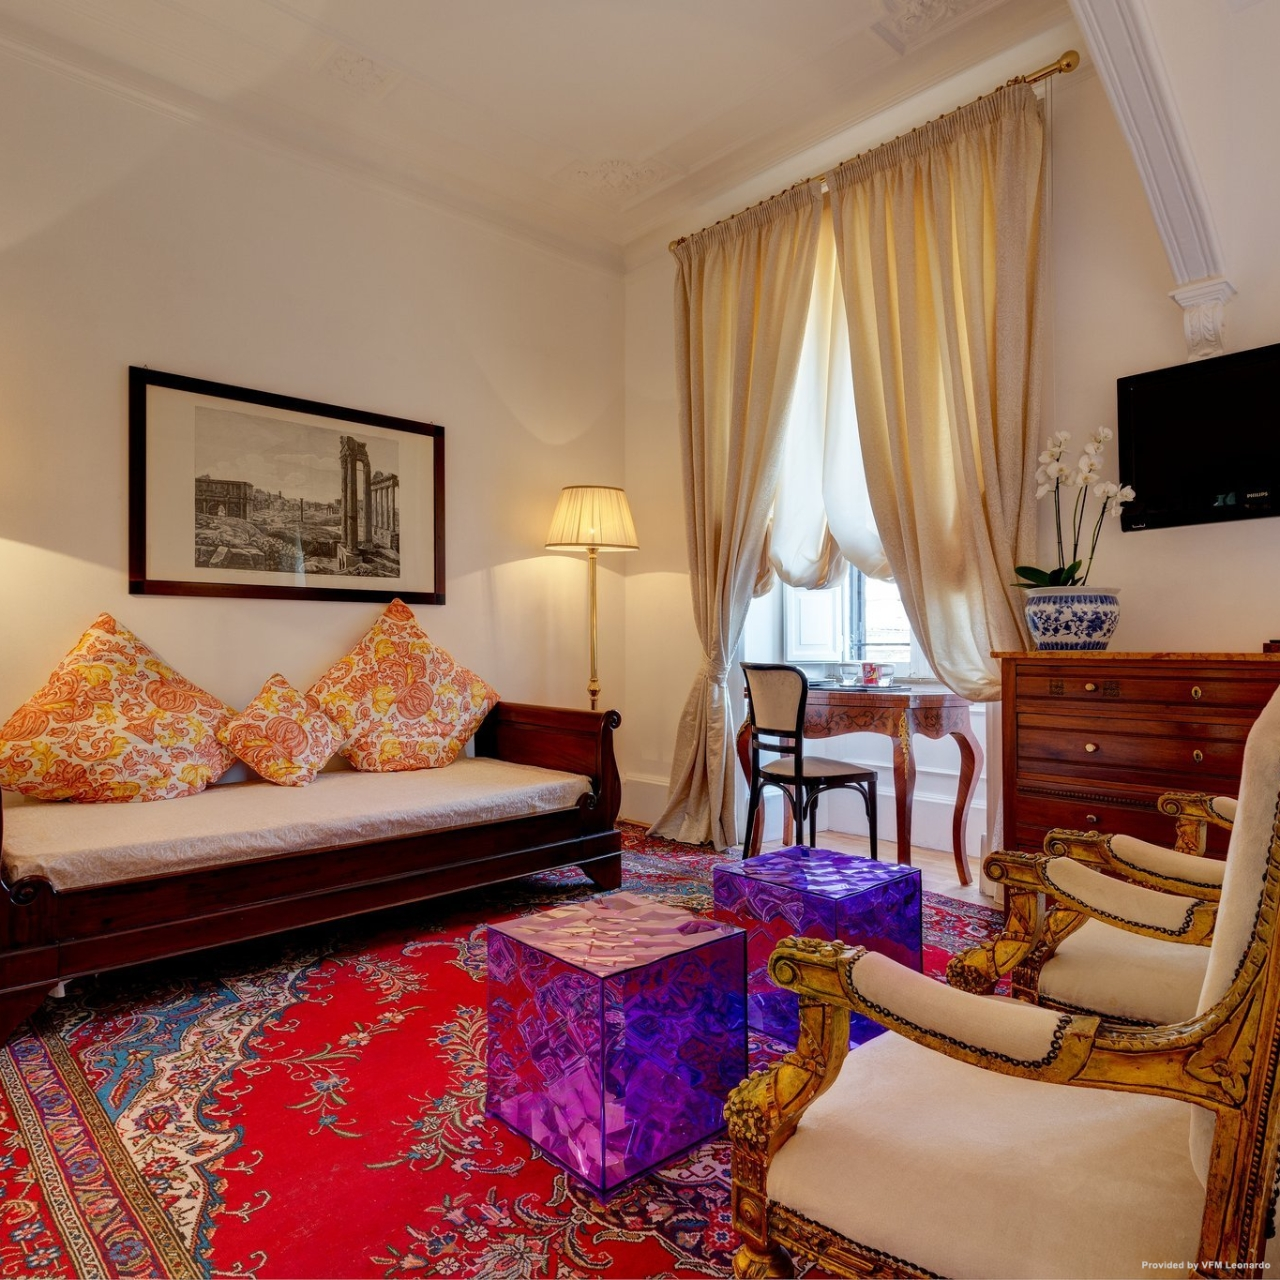 Grand Hotel Plaza Rome Lazio At Hrs With Free Services